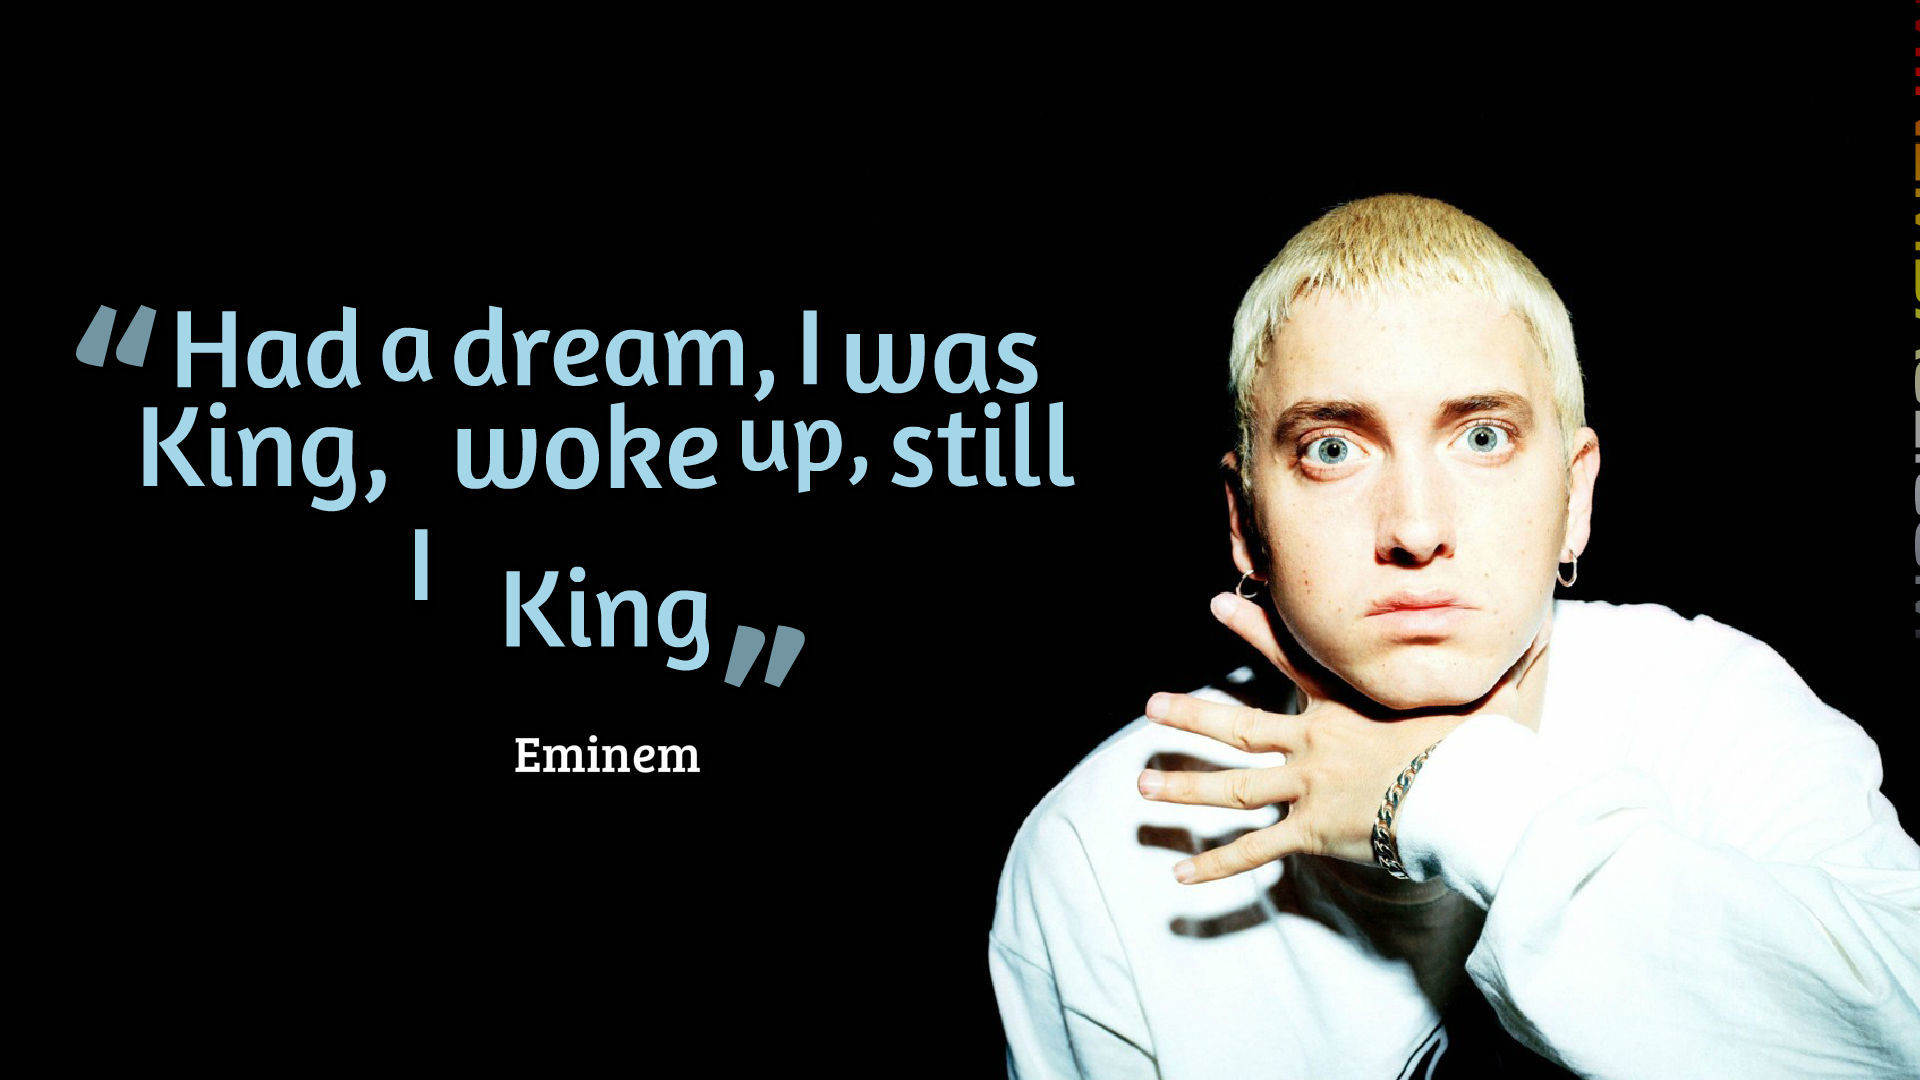 1920x1080 Eminem Quotes HD Wallpapers 14247 · Download · 1920x1080 Standard  .